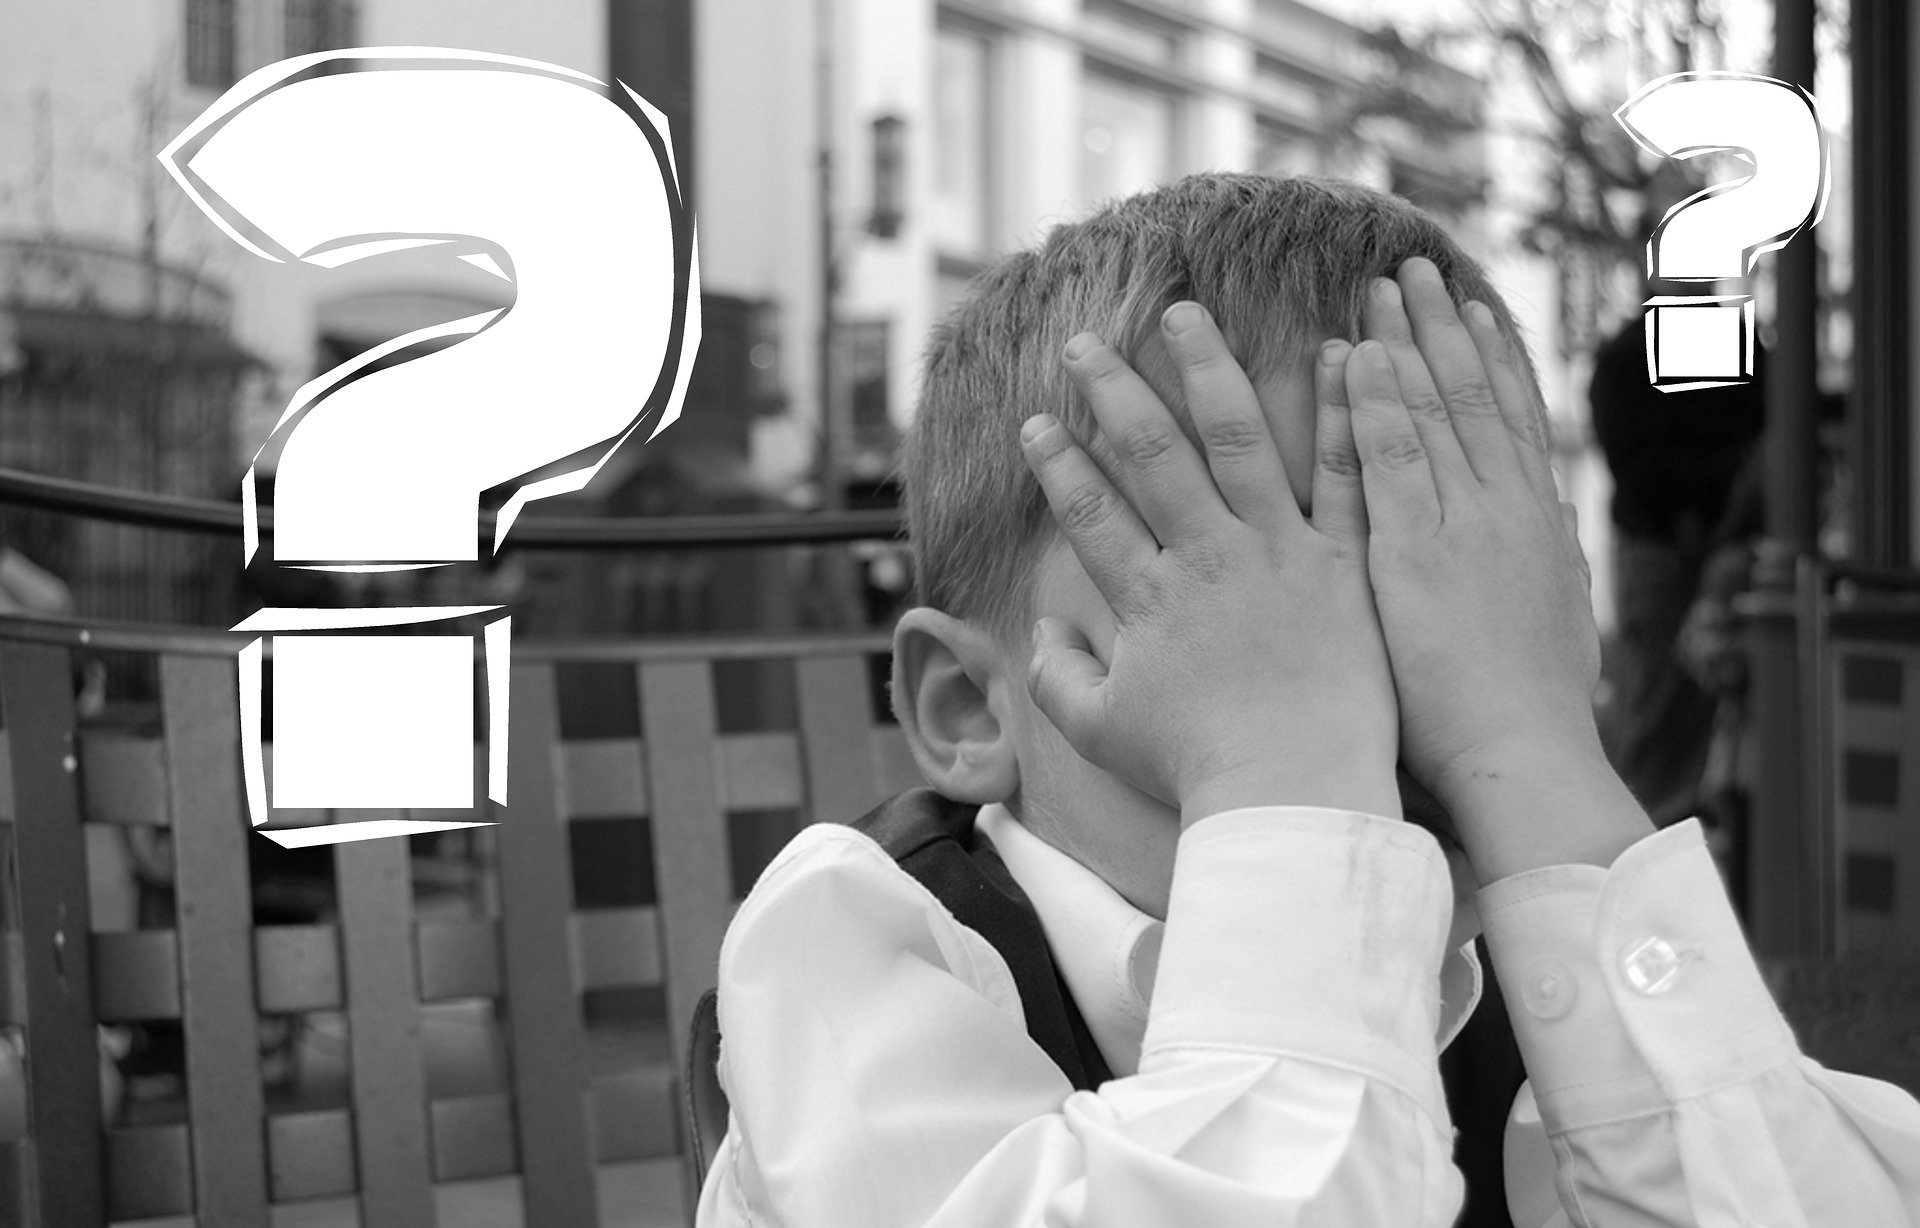 Young child covering face with white question marks in background